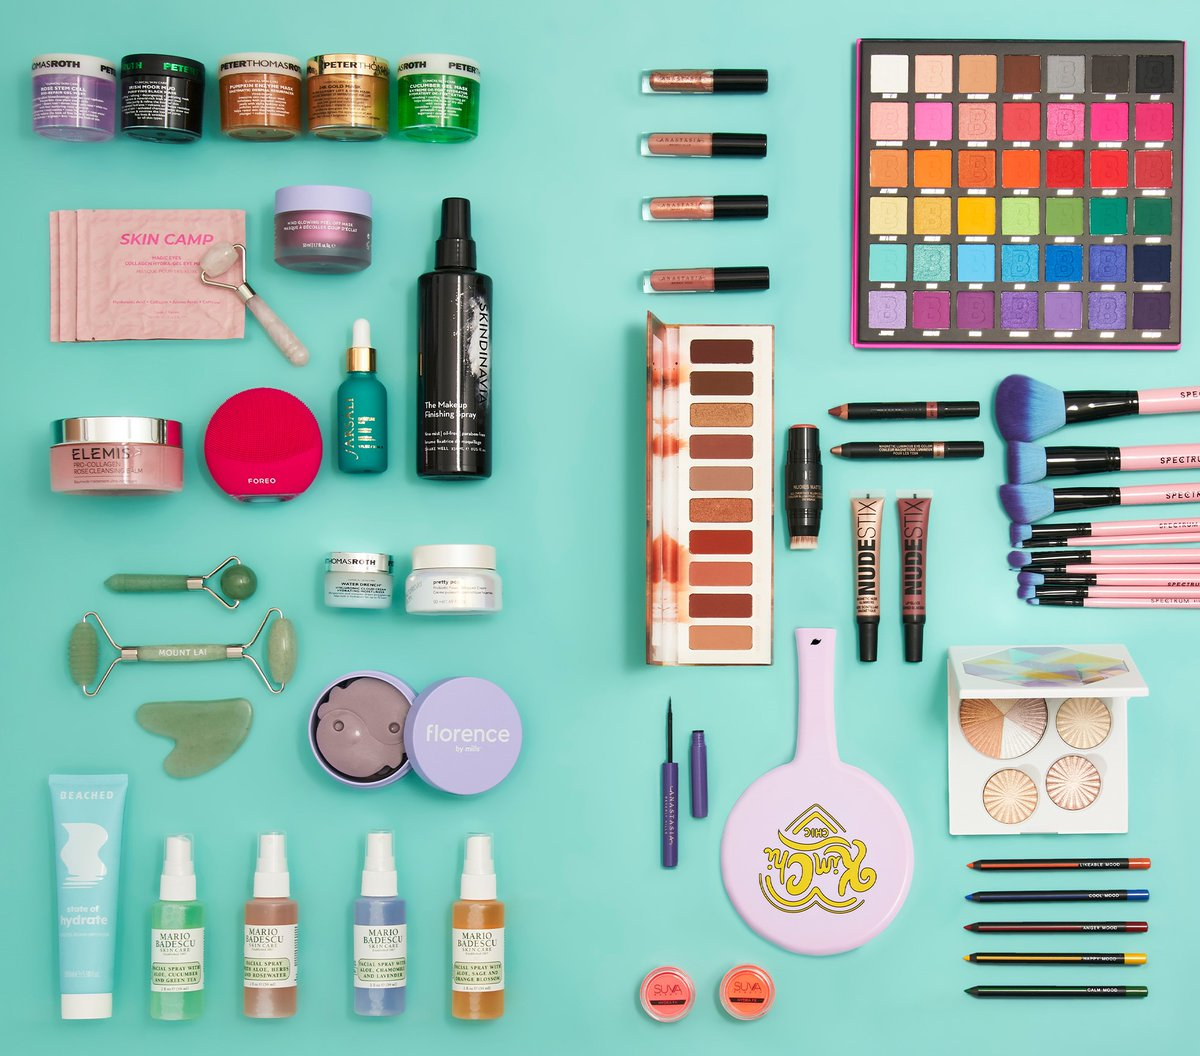 🚨 COMPETITION TIME 🚨 Win this boujjj skincare & makeup bundle 💄🧴✨  All you gotta do is: - Like & RT this pic ⚡ - Make sure you're following @beautybay AND on TikTok https://t.co/5okaug2ftz 💖 - Tag someone who NEEDS this 👇🔥  (T&C's apply: https://t.co/AGR52at5UR) https://t.co/VmHIw9kxAU